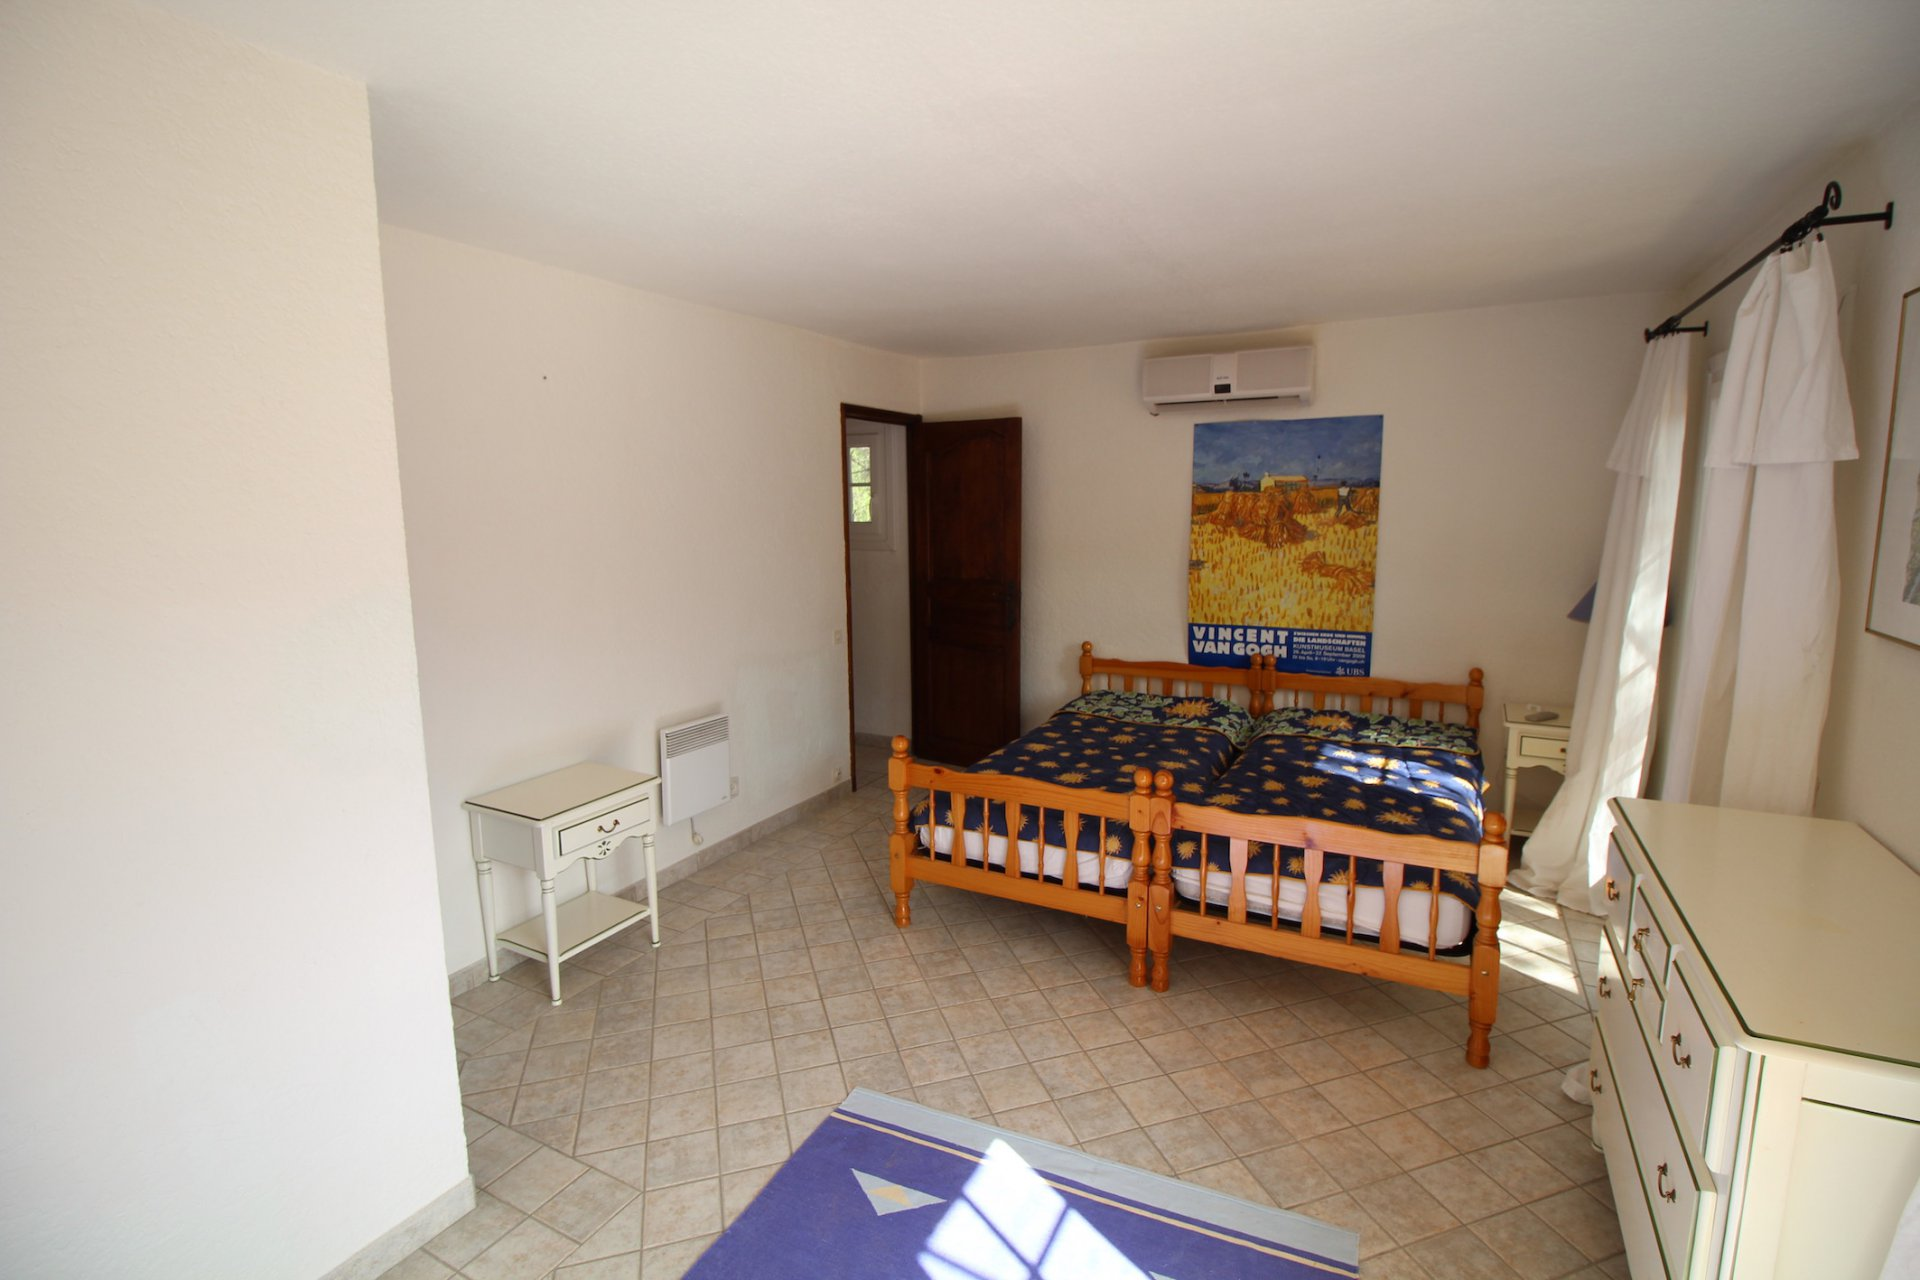 Vidauban, confortable house with a lot of possibilities